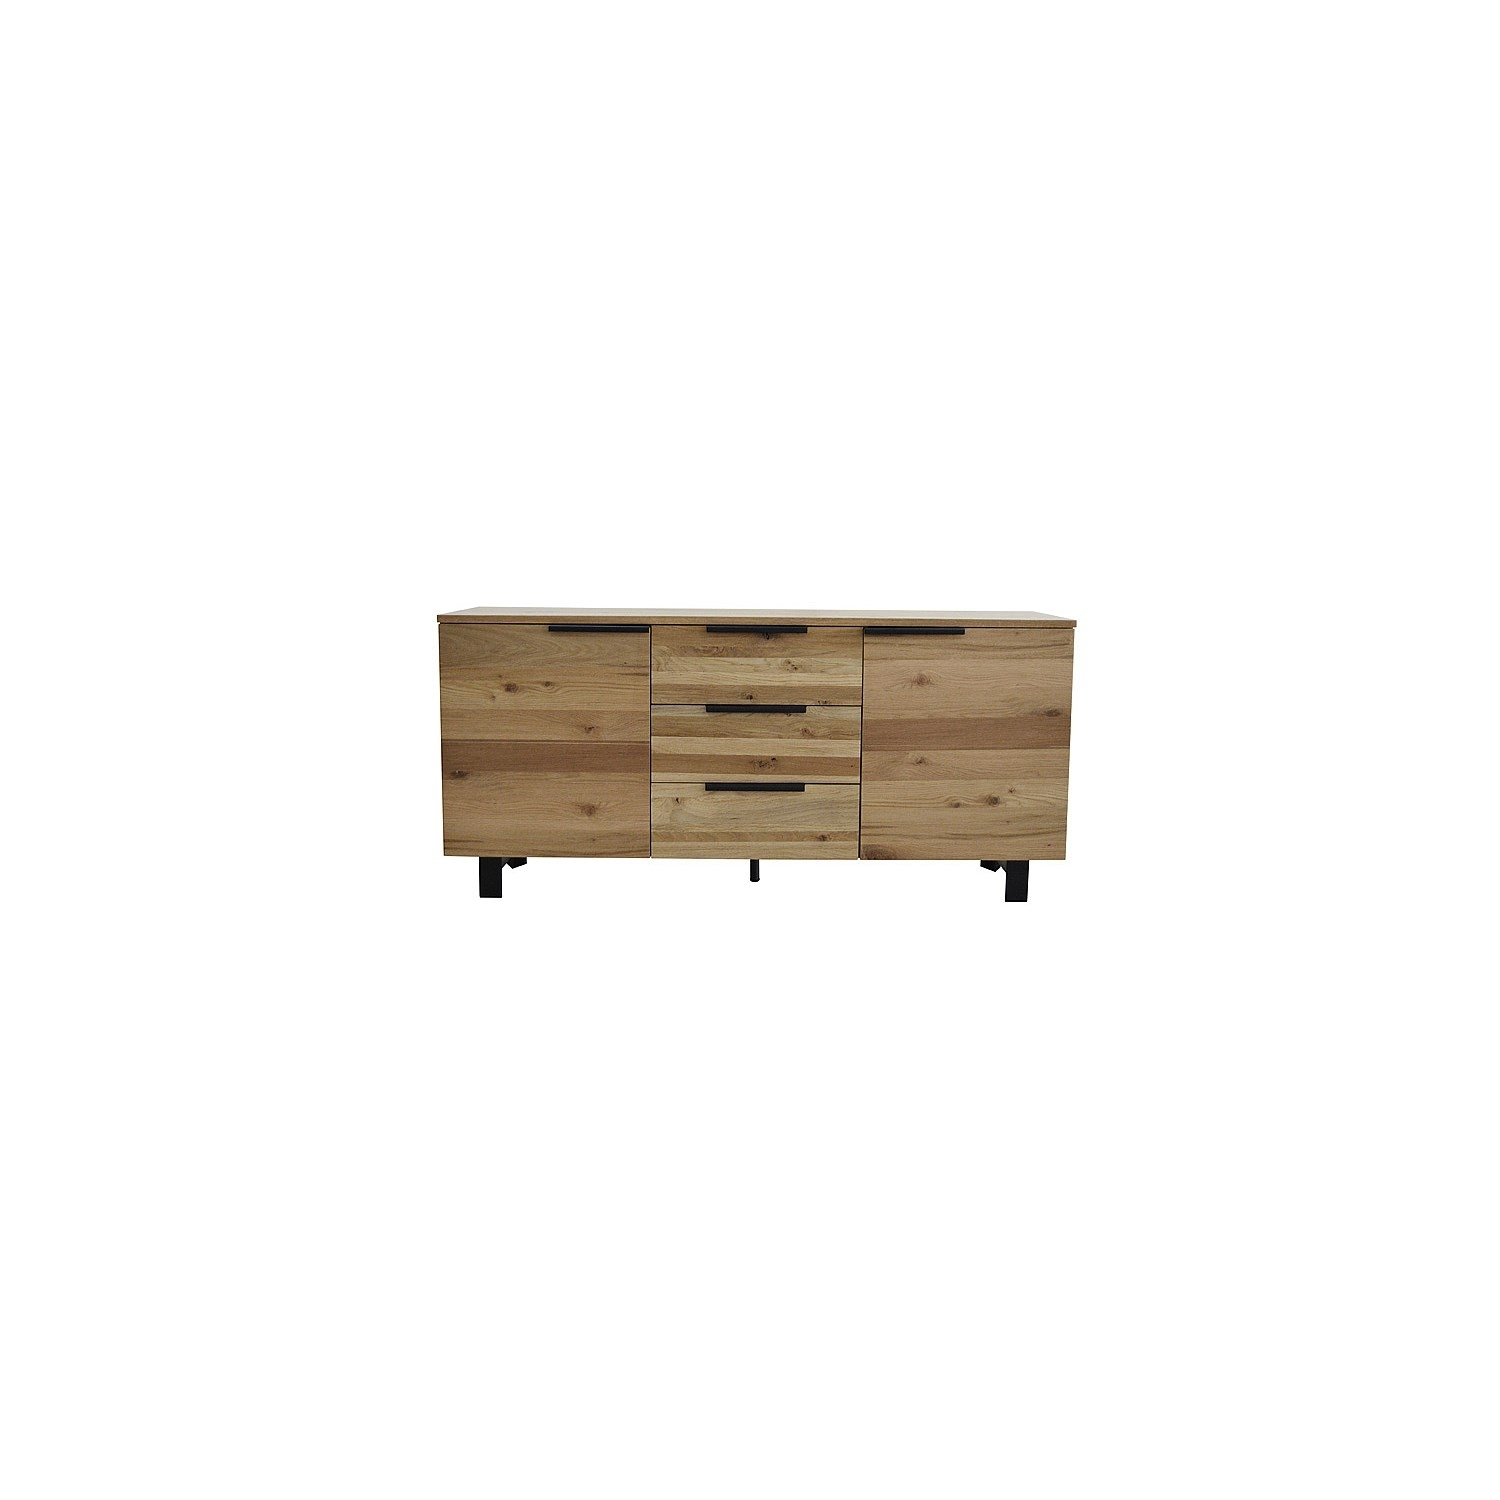 Buffets in 4-Door 3-Drawer White Wash Sideboards (Image 3 of 30)